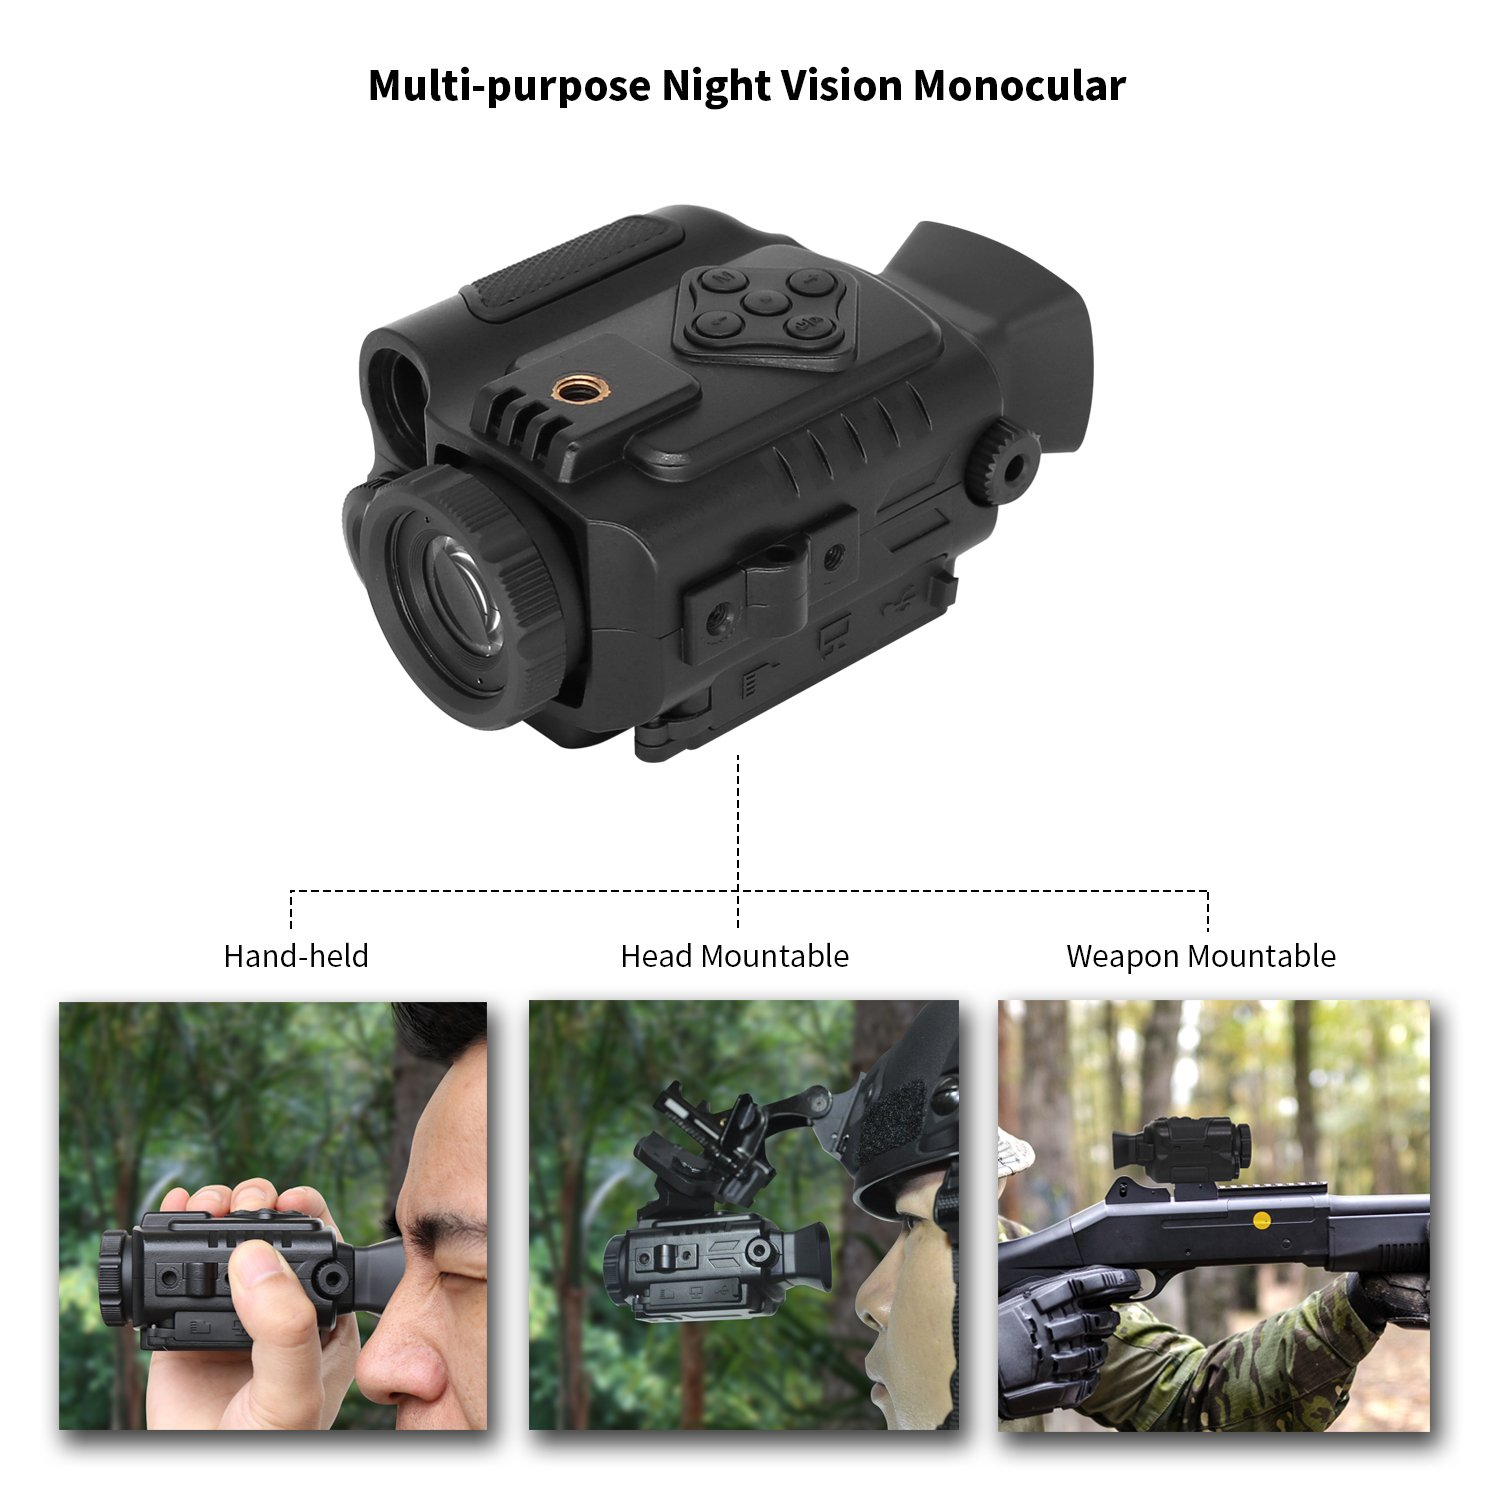 Mini Night Vision Monocular pic-2